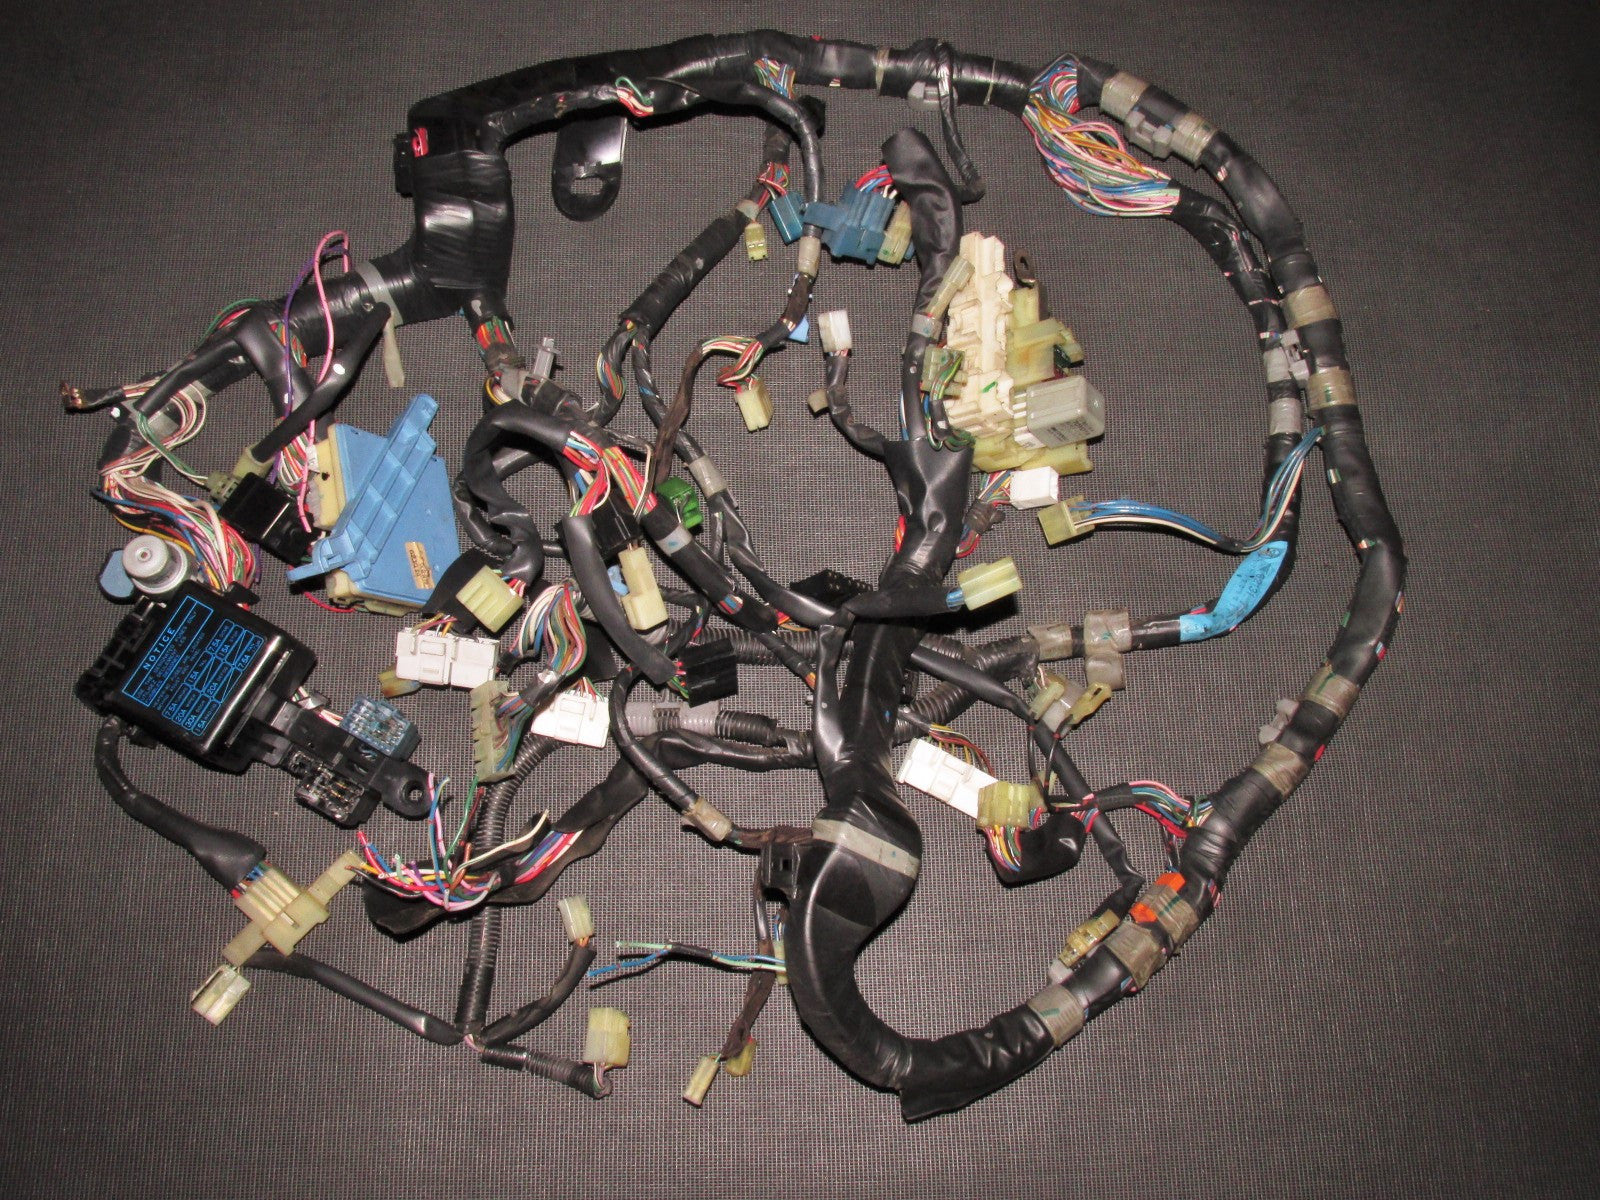 IMG_3818_c2b1ca70 7f95 4eb6 9a8b db4abf8d7a7b?v=1445736011 87 88 89 toyota mr2 oem dash wiring harness 4age m t mr2 v6 wiring harness at bayanpartner.co